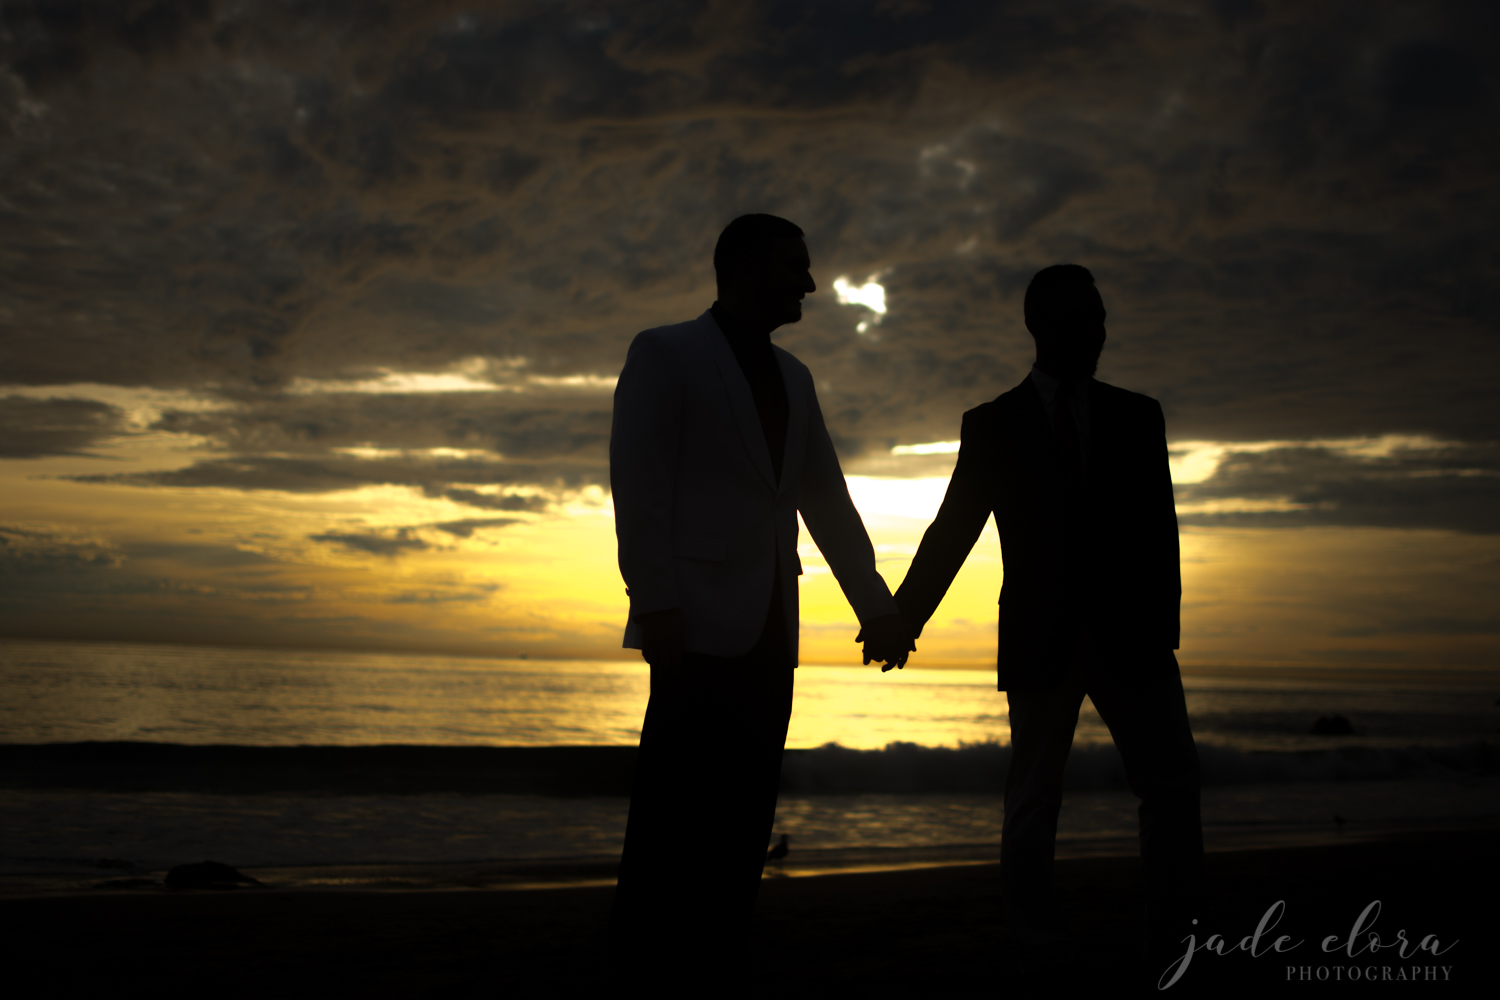 Two Male Silhouettes Holding Hands Against Sunset Backdrop